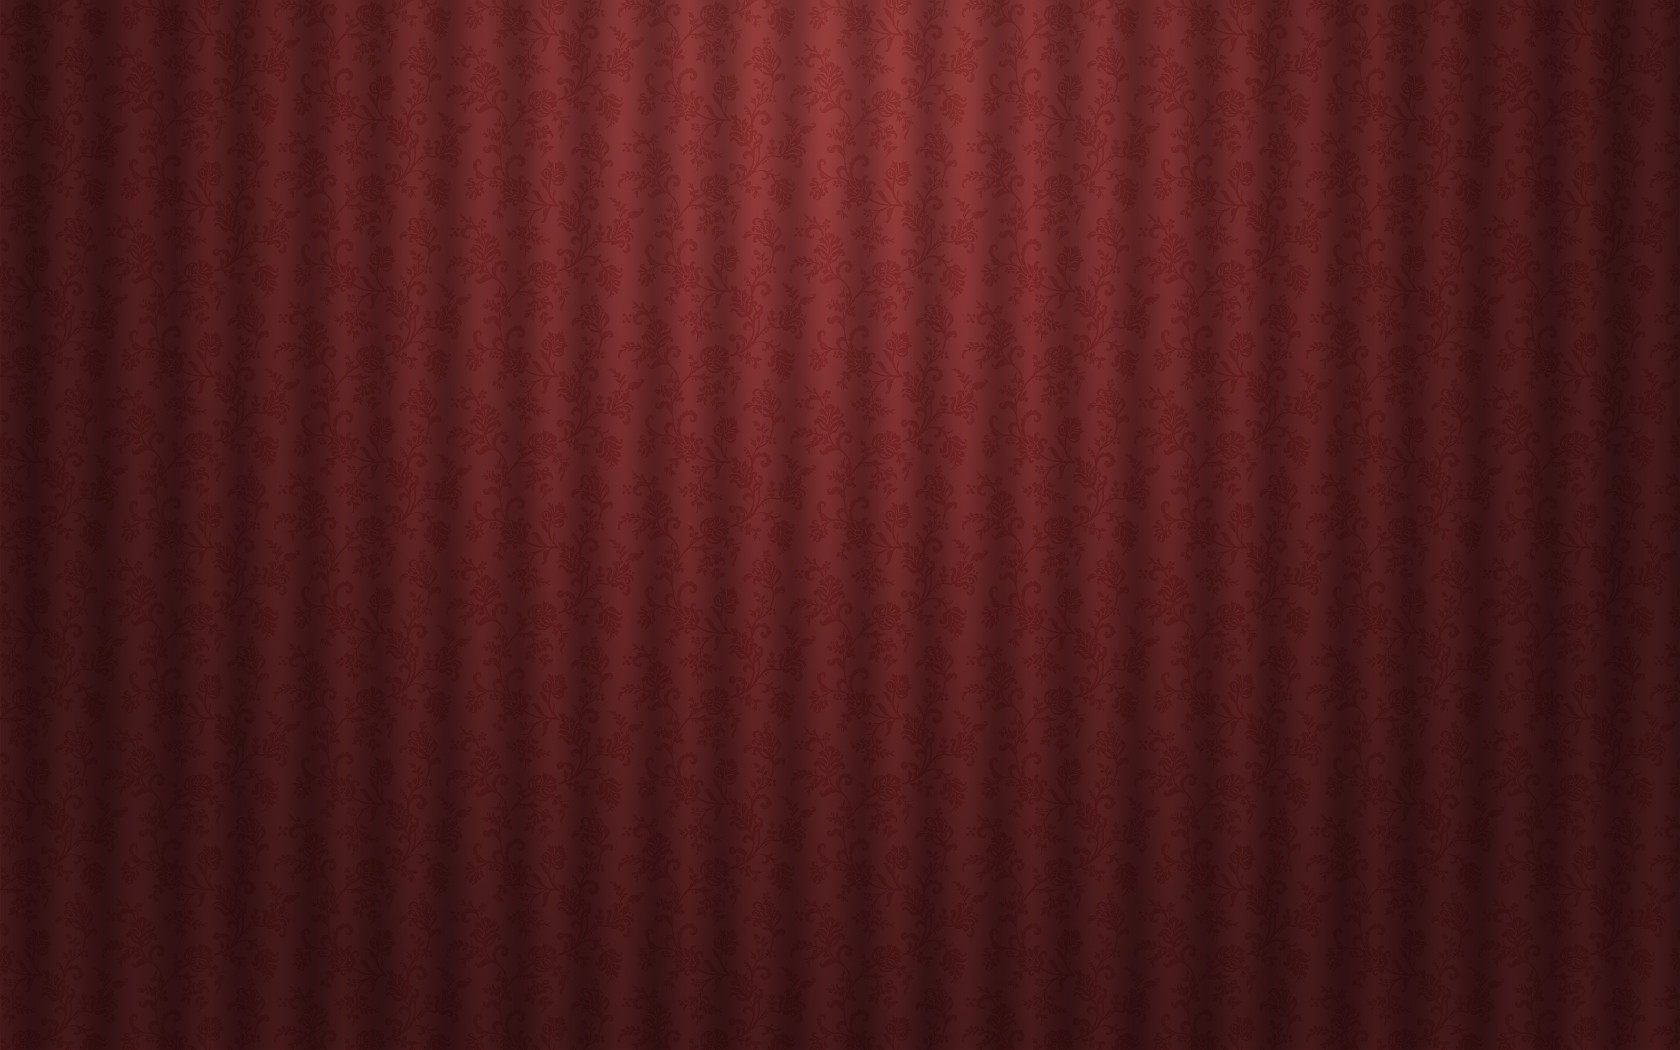 Curtains texture - Red Textures Curtains Floral Wallpaper 1680x1050 63189 Wallpaperup